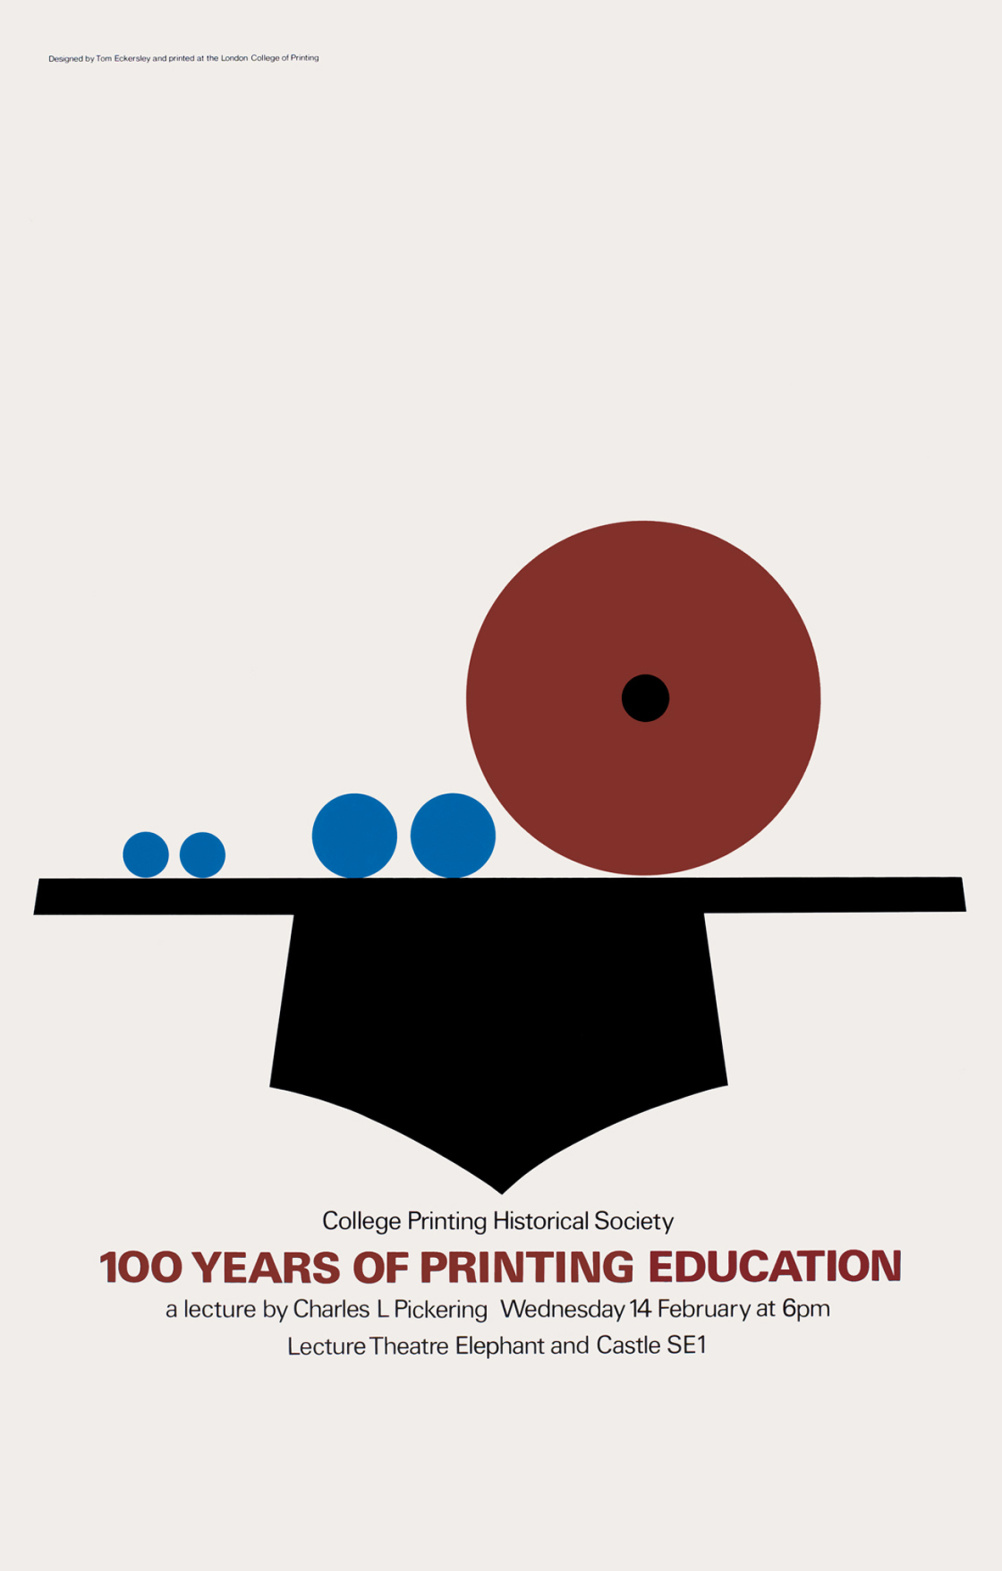 100 Years of Printing Education